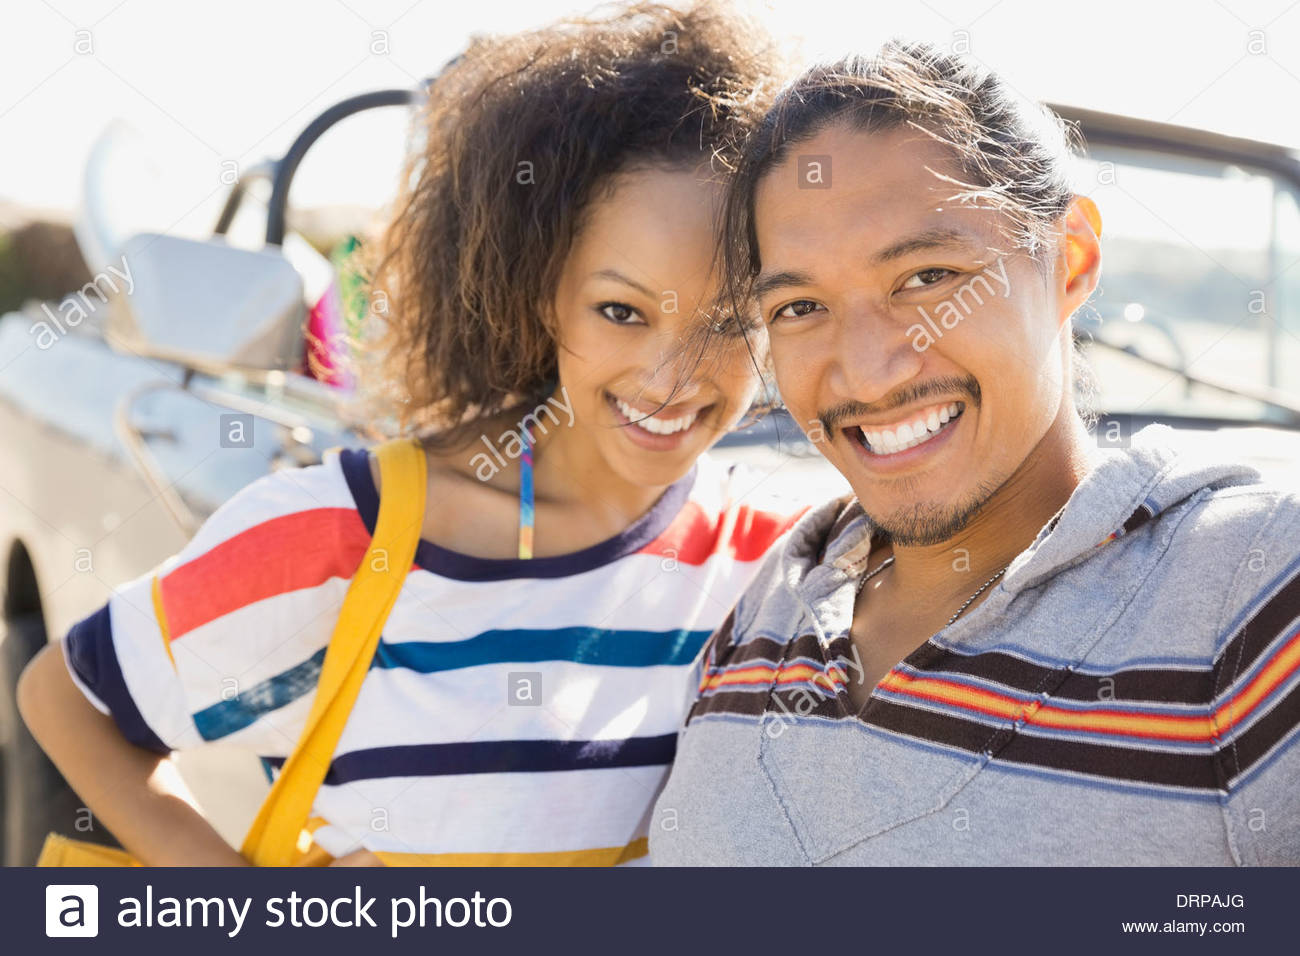 Portrait of multiethnic couple standing by off-road vehicle - Stock Image